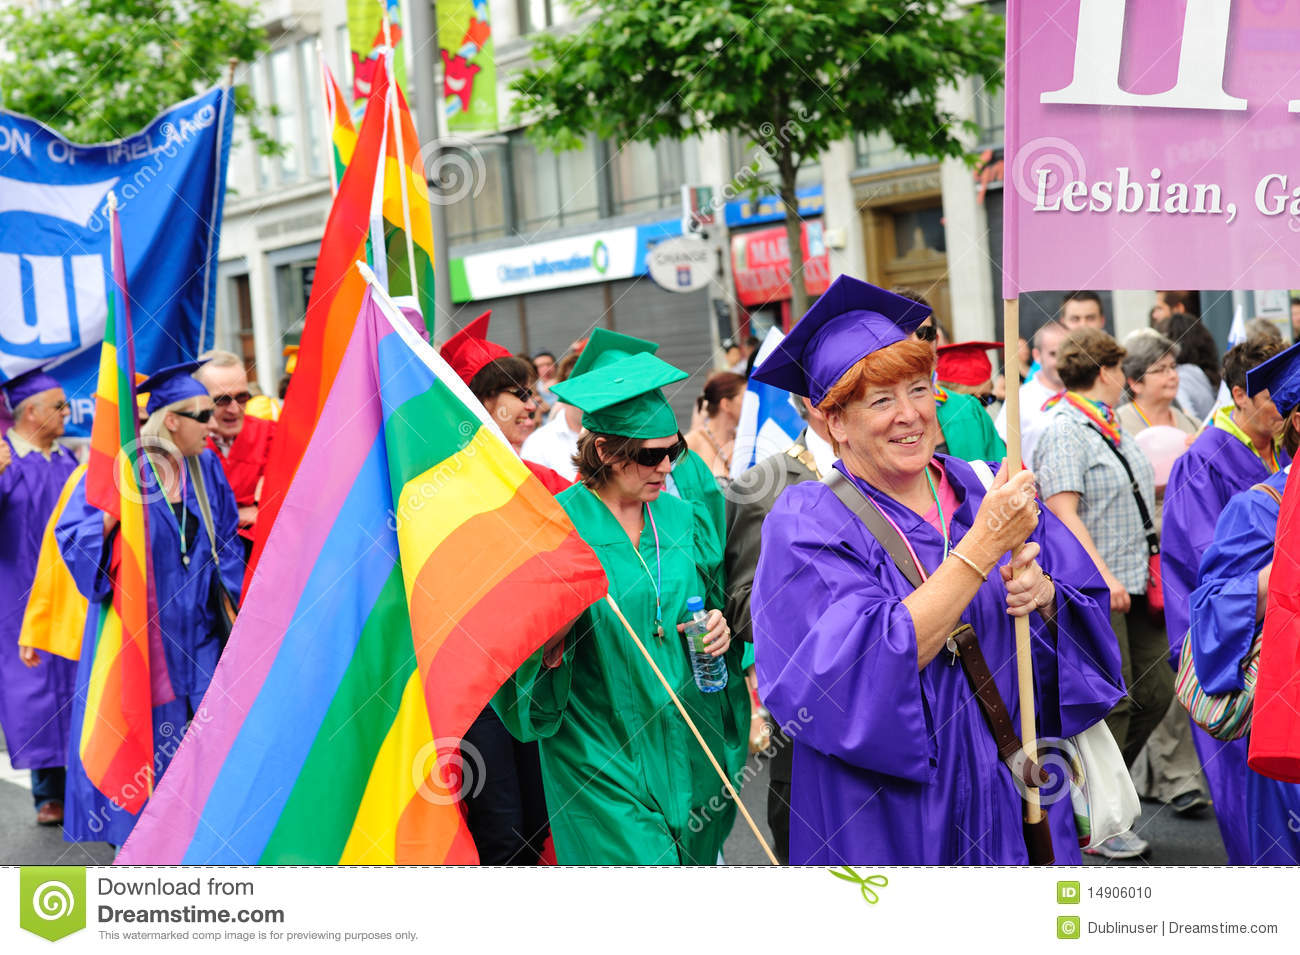 Gay lesbian bisexual rights group